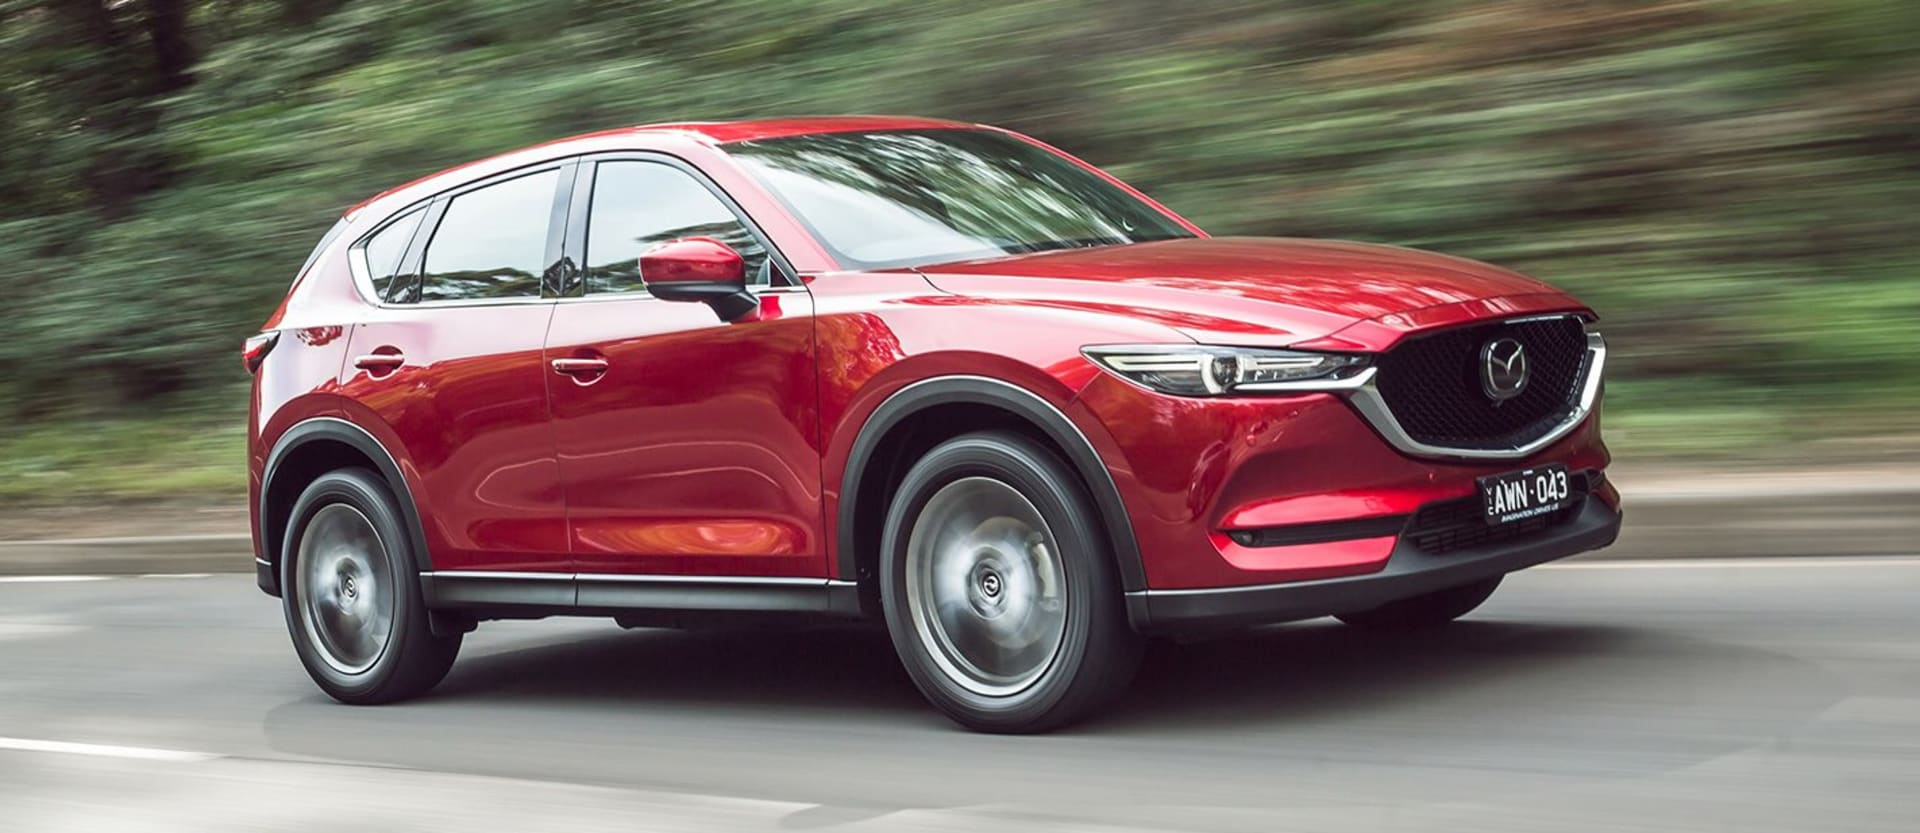 Mazda Cx 5 Turbo Kead Jpg